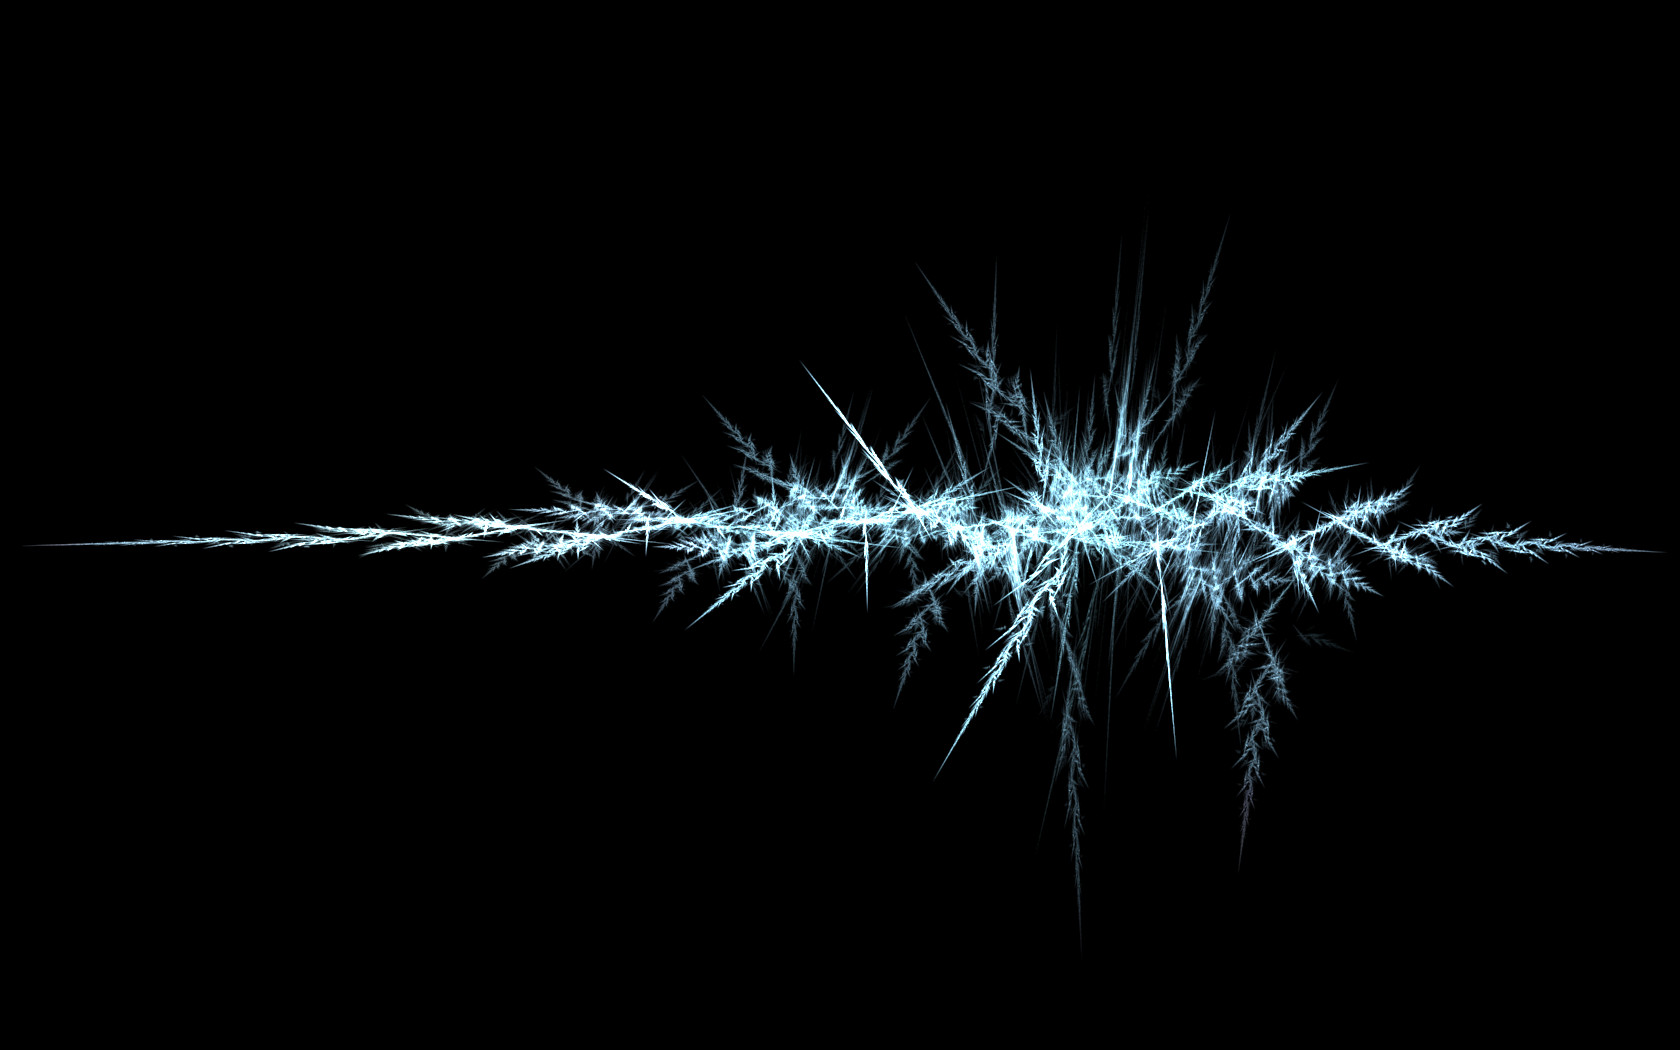 Dark Abstract 1663 Hd Wallpapers in Abstract   Imagescicom 1680x1050